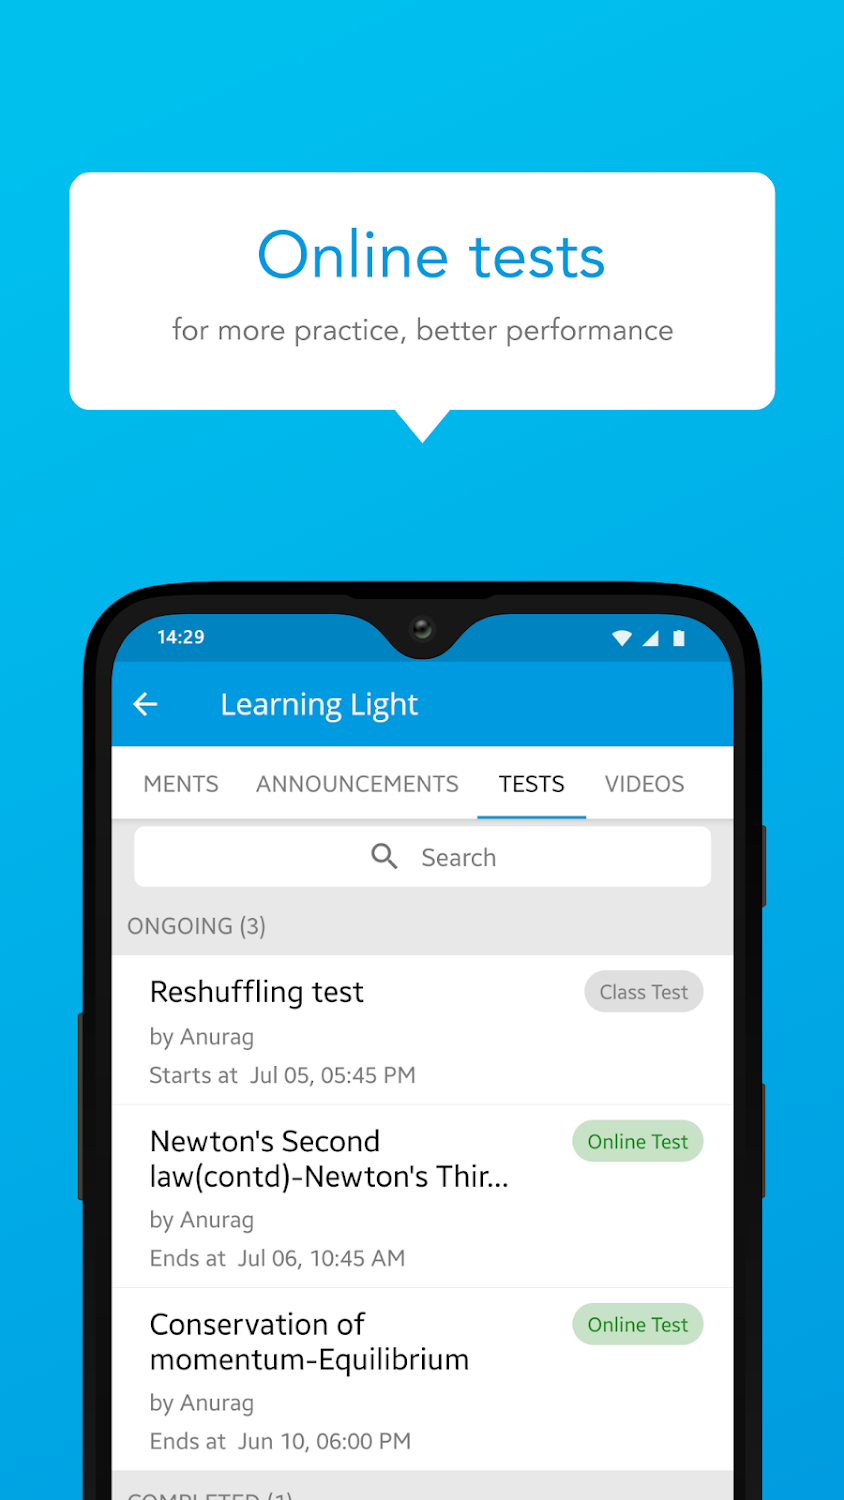 Our online learning app